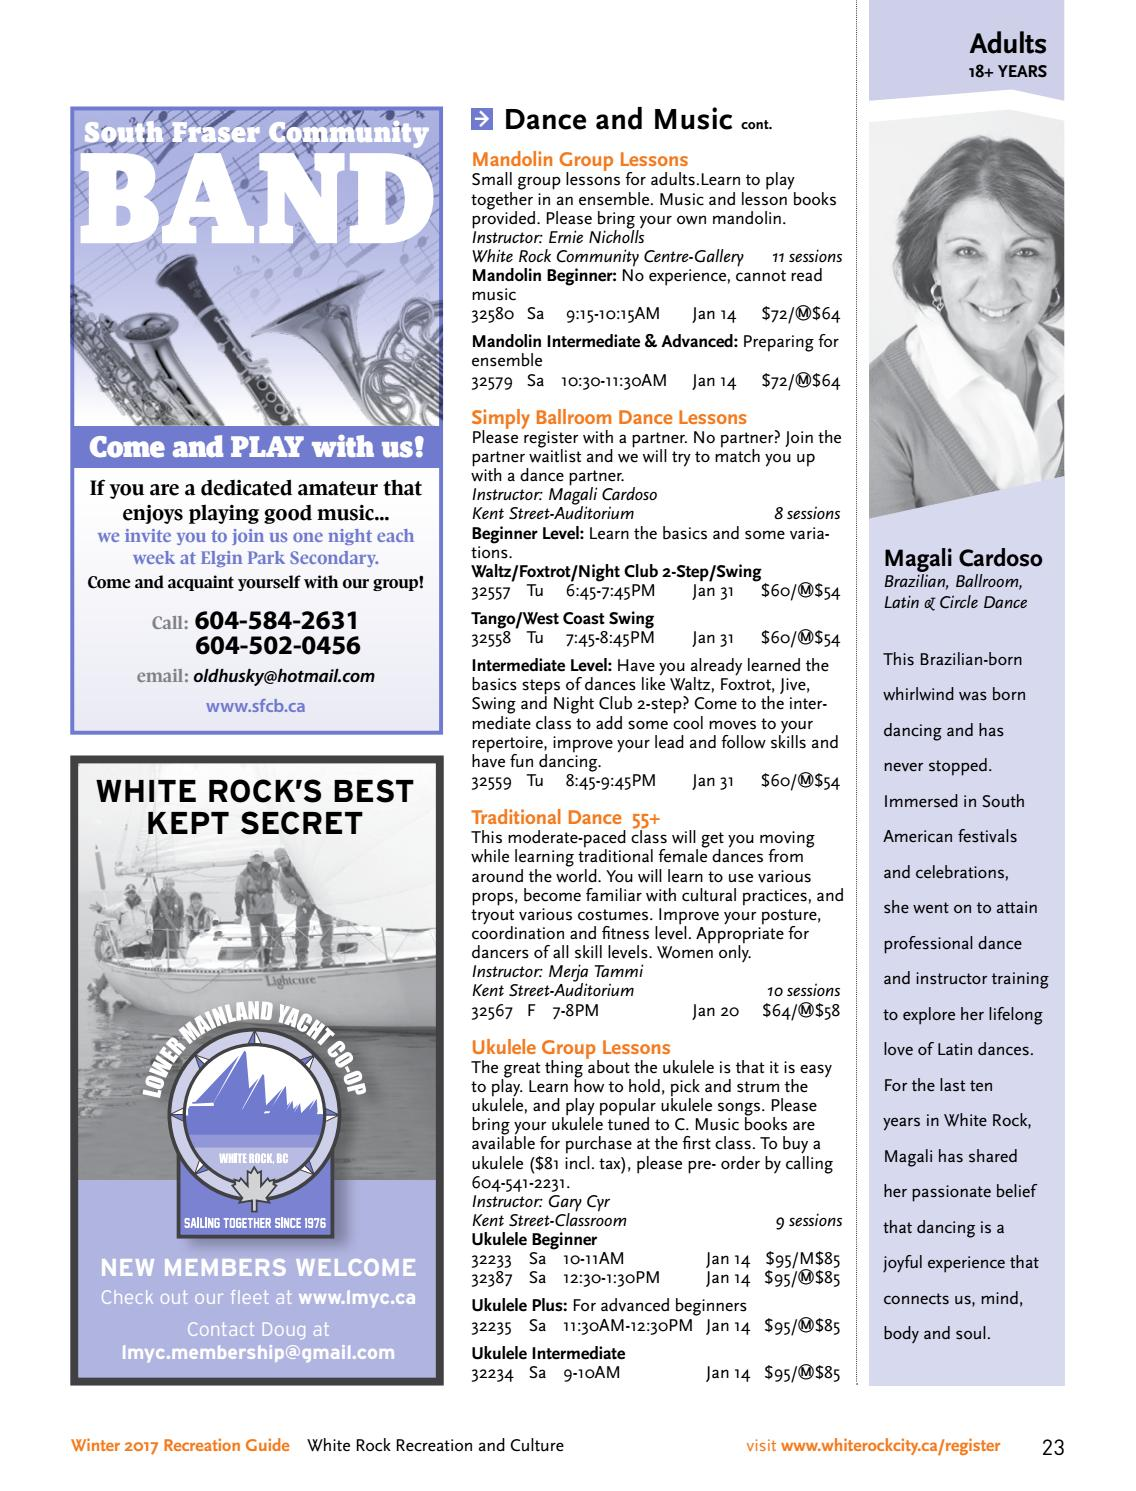 Winter 2017 White Rock Recreation Guide by City of White